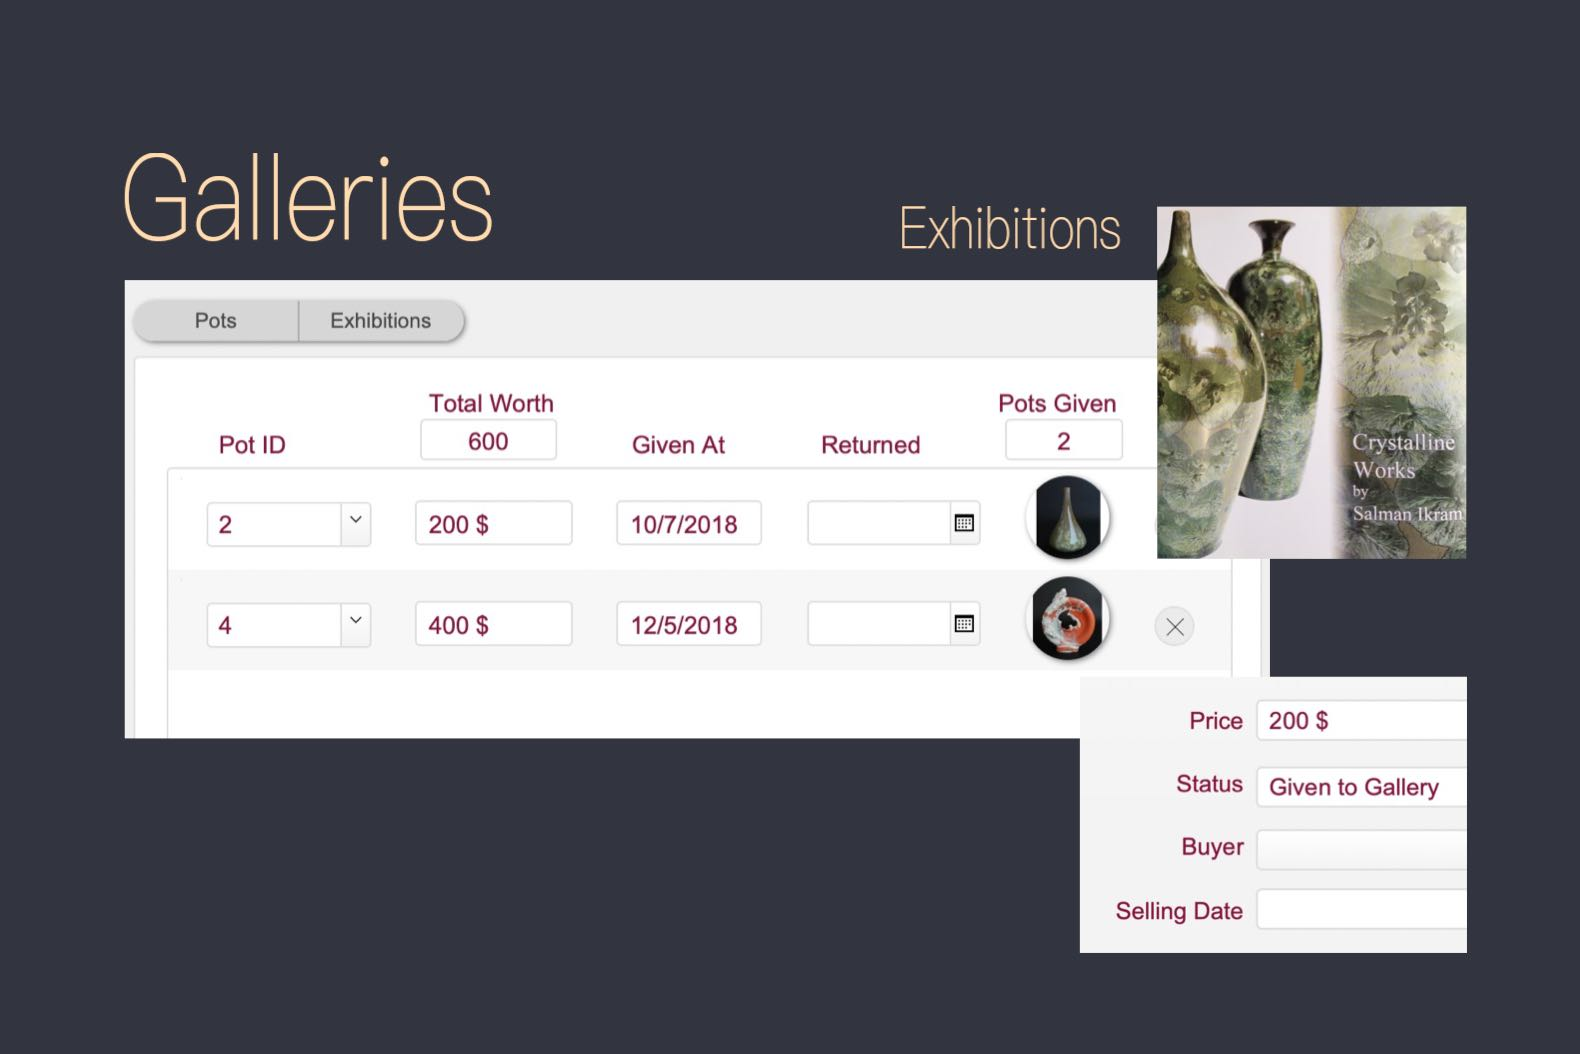 Ceramics and pottery exhibitions